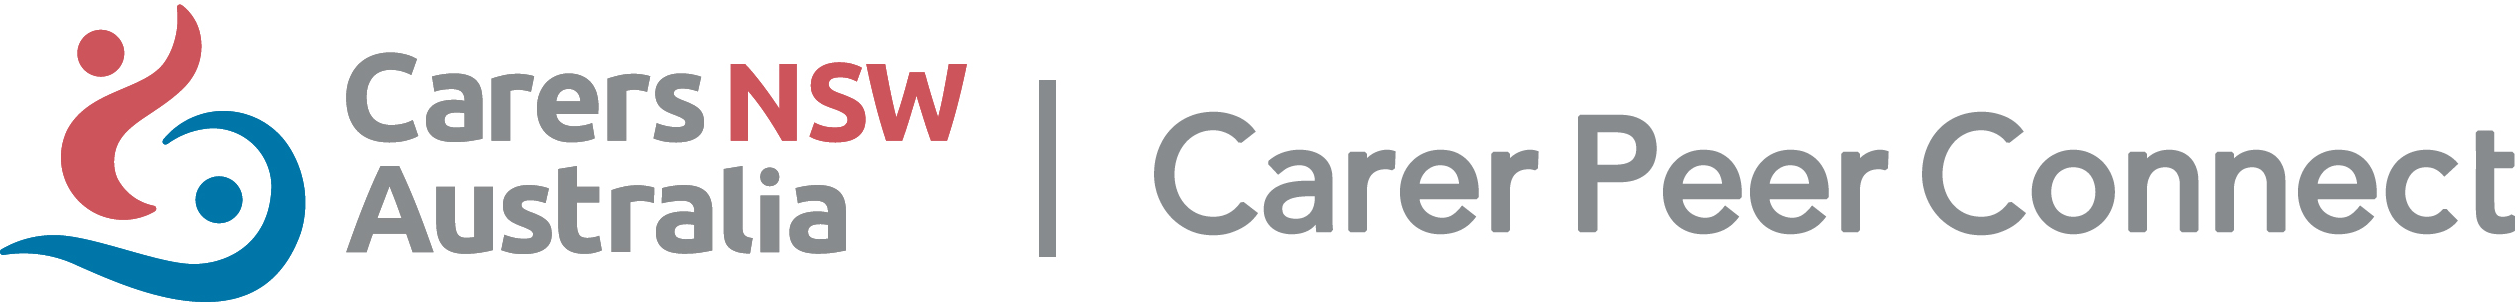 Carers: support groups for carers of people with a disability in NSW